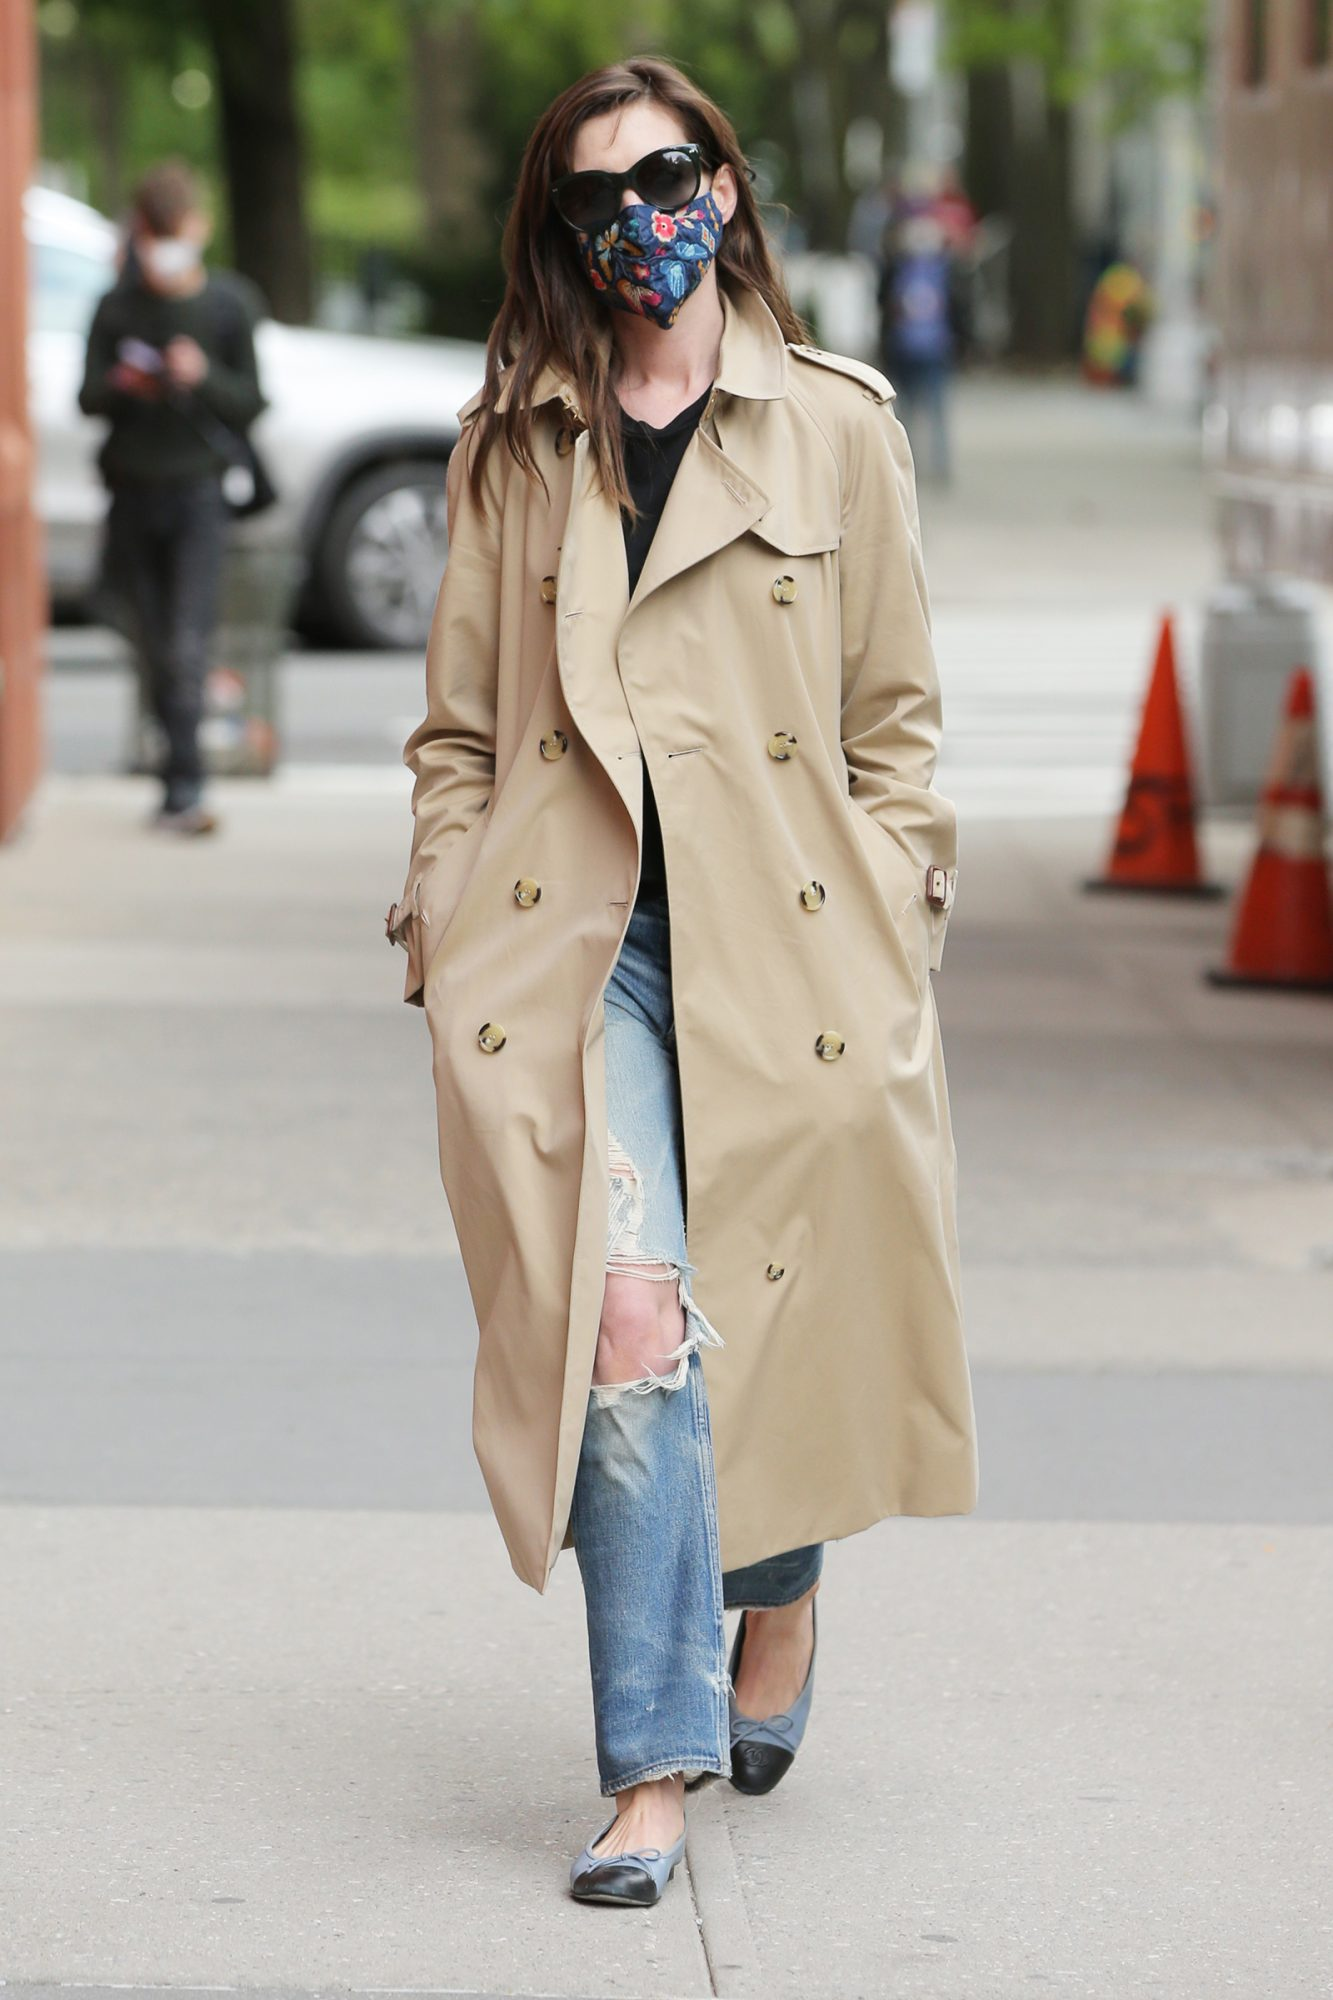 Anne Hathaway In On Set Of Her New Apple Series 'We Work' In New York City